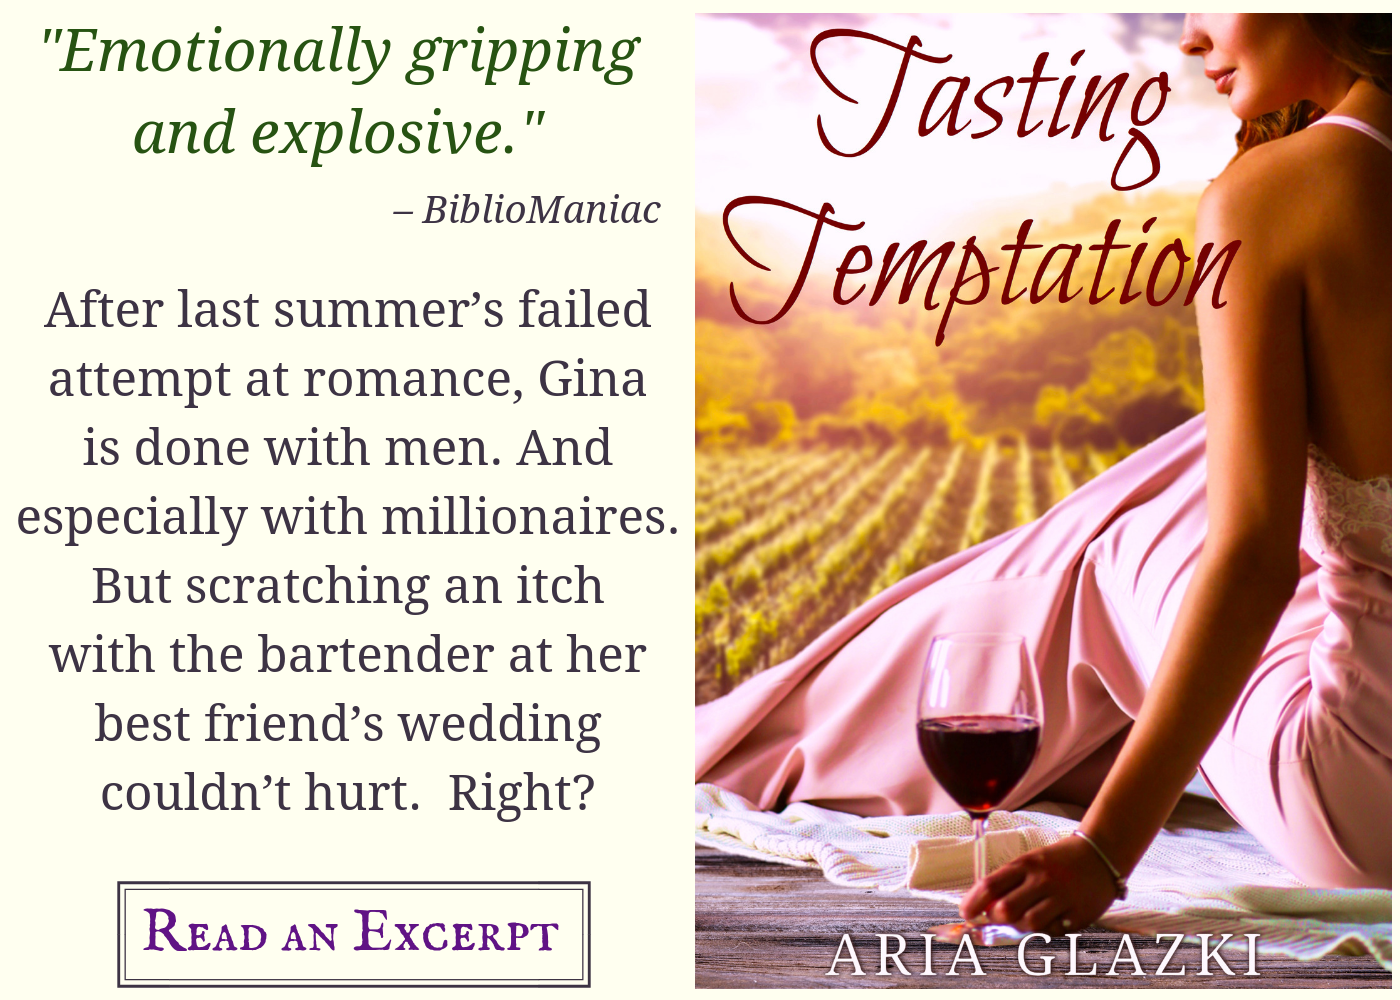 "Image card for Tasting Temptation by Aria Glazki, featuring book cover and text: ""Emotionally gripping and explosive."" —Bibliomaniac After last summer's failed attempt at romance, Gina is done with men. And especially with millionaires. But scratching an itch with the bartender at her best friend's wedding couldn't hurt. Right? Read an excerpt."